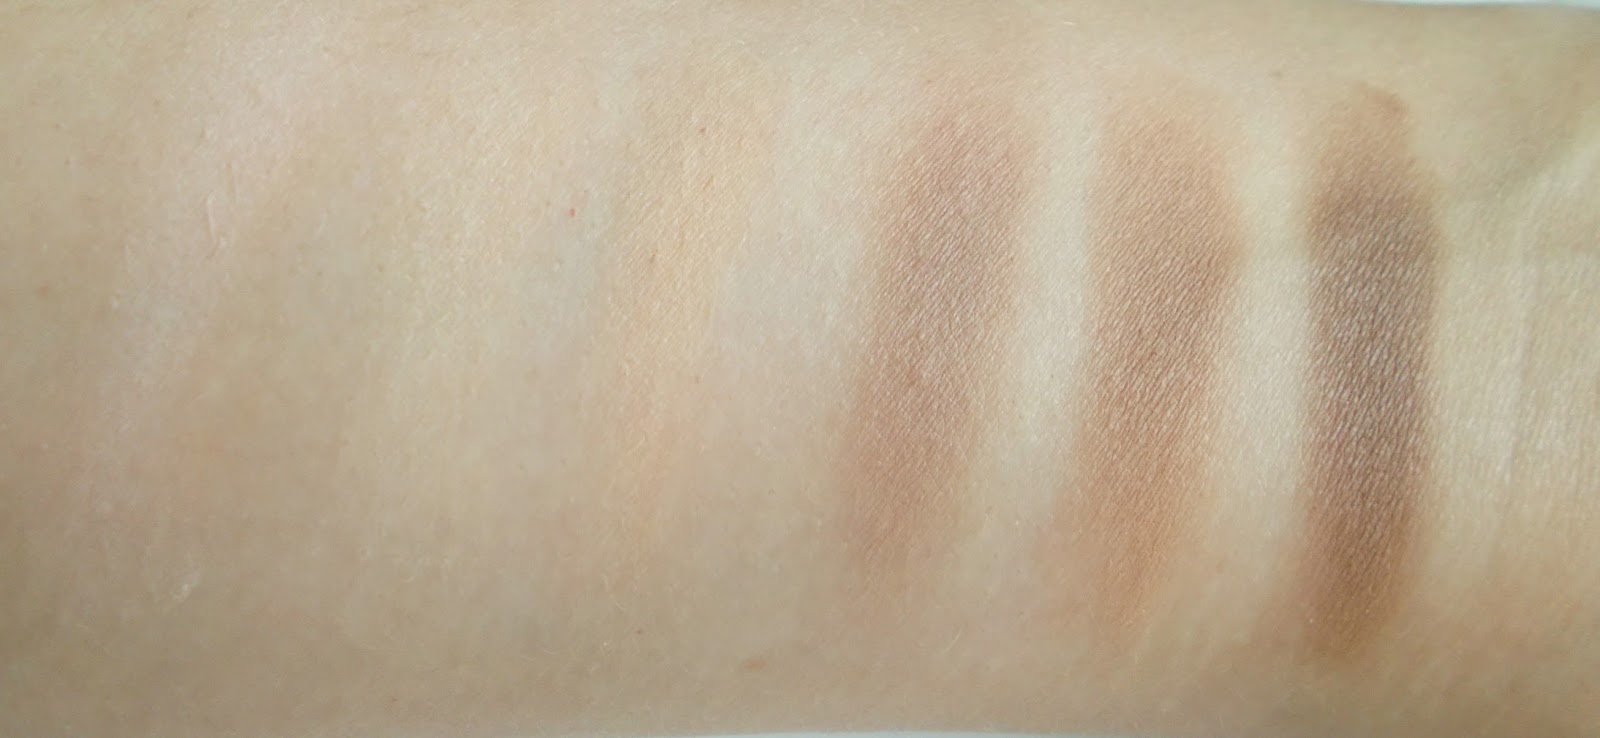 Kat Von D Shade and Light Contour palette swatches